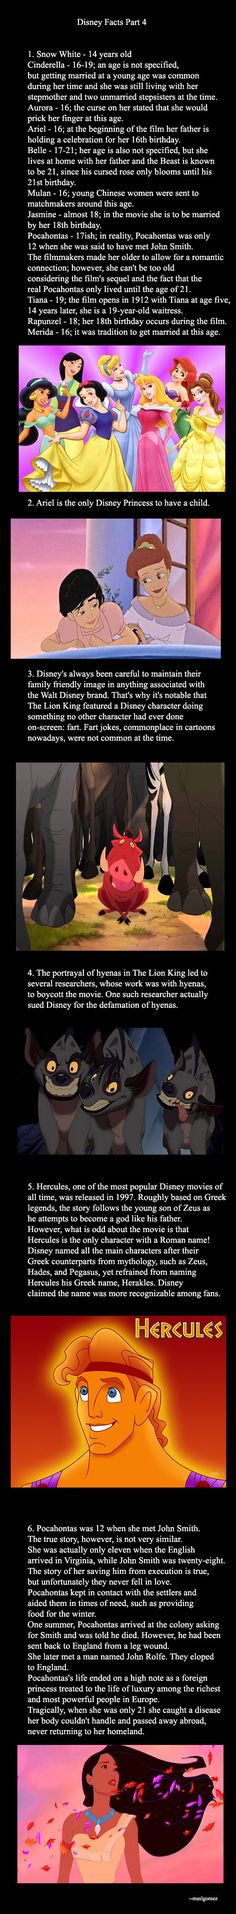 Disney Facts Part 4